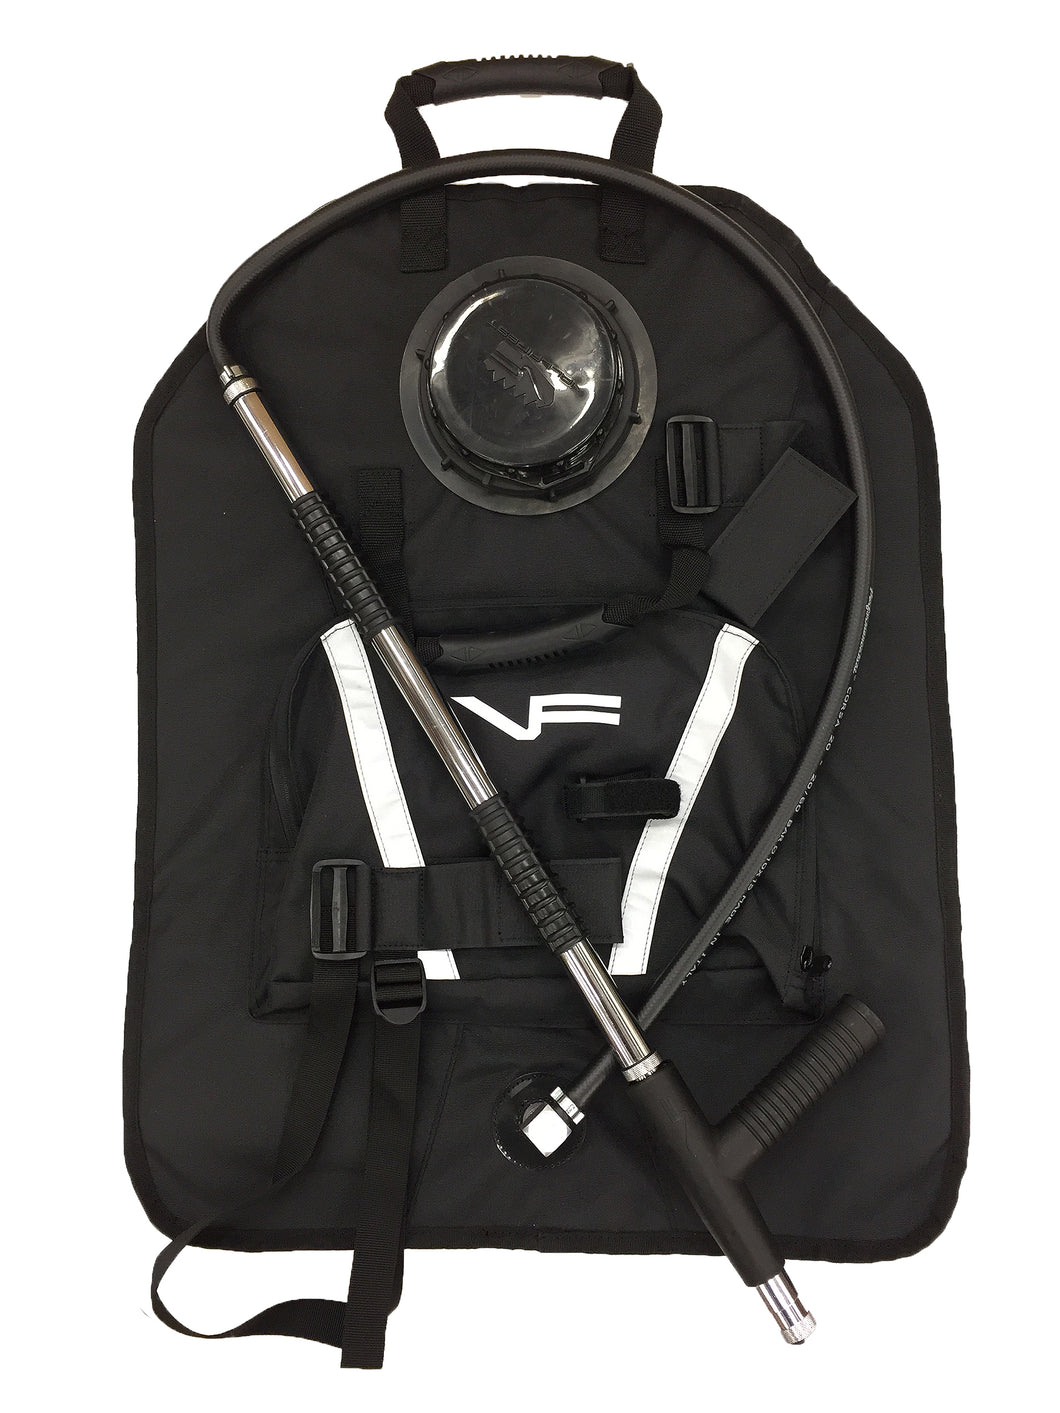 Black backpack pump kit for wildland fire equipment.